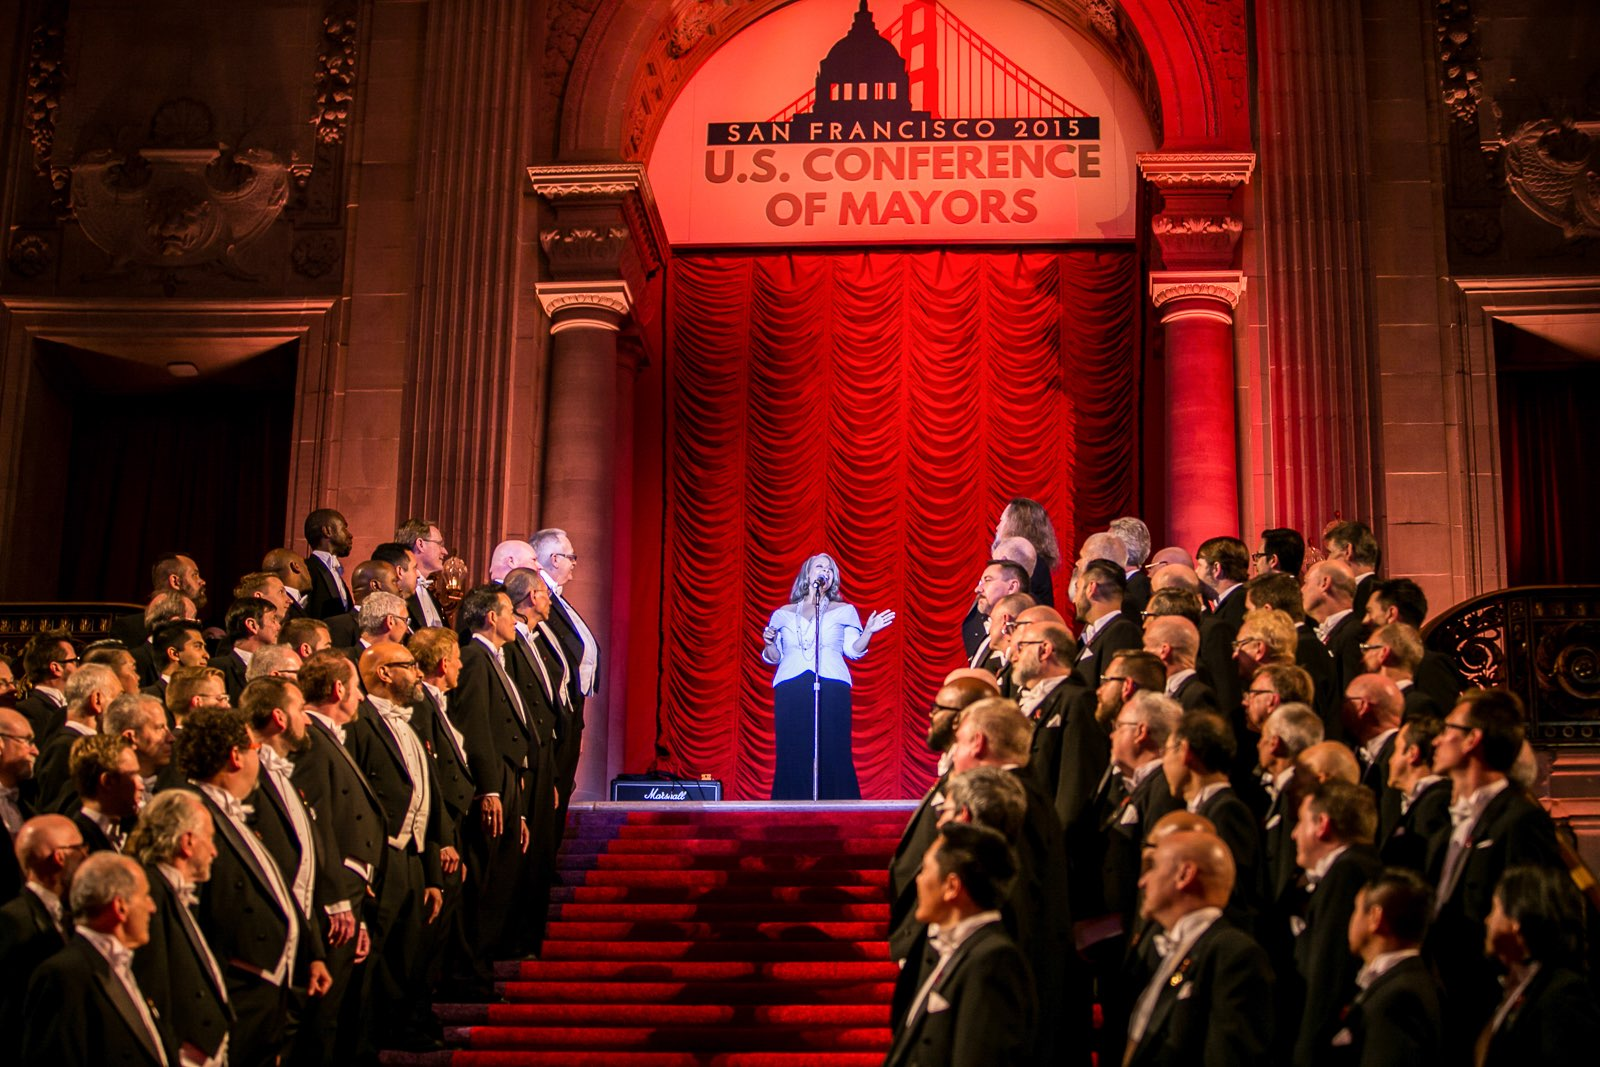 sf-city-hall-us-conference-of-mayors-gala